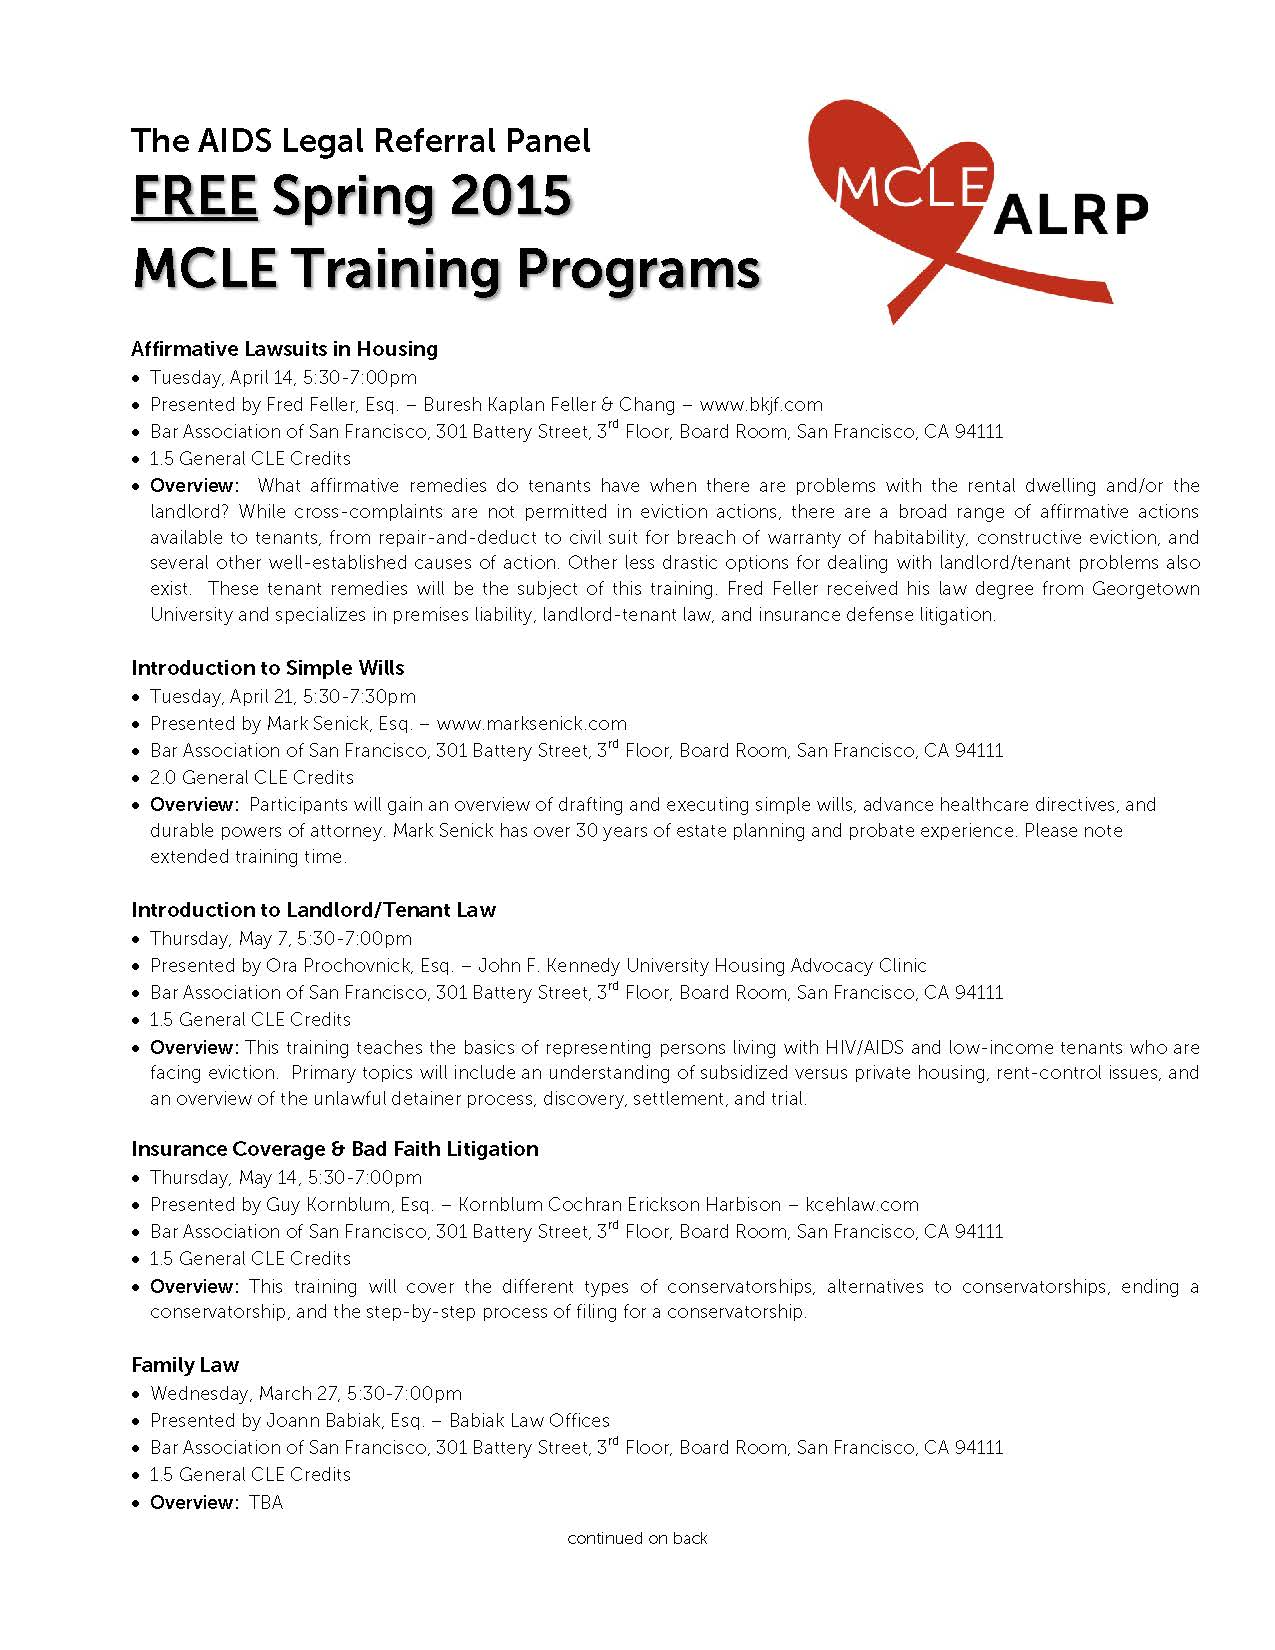 ALRP Free Spring 2015 MCLE Trainings Flyer_Page_1